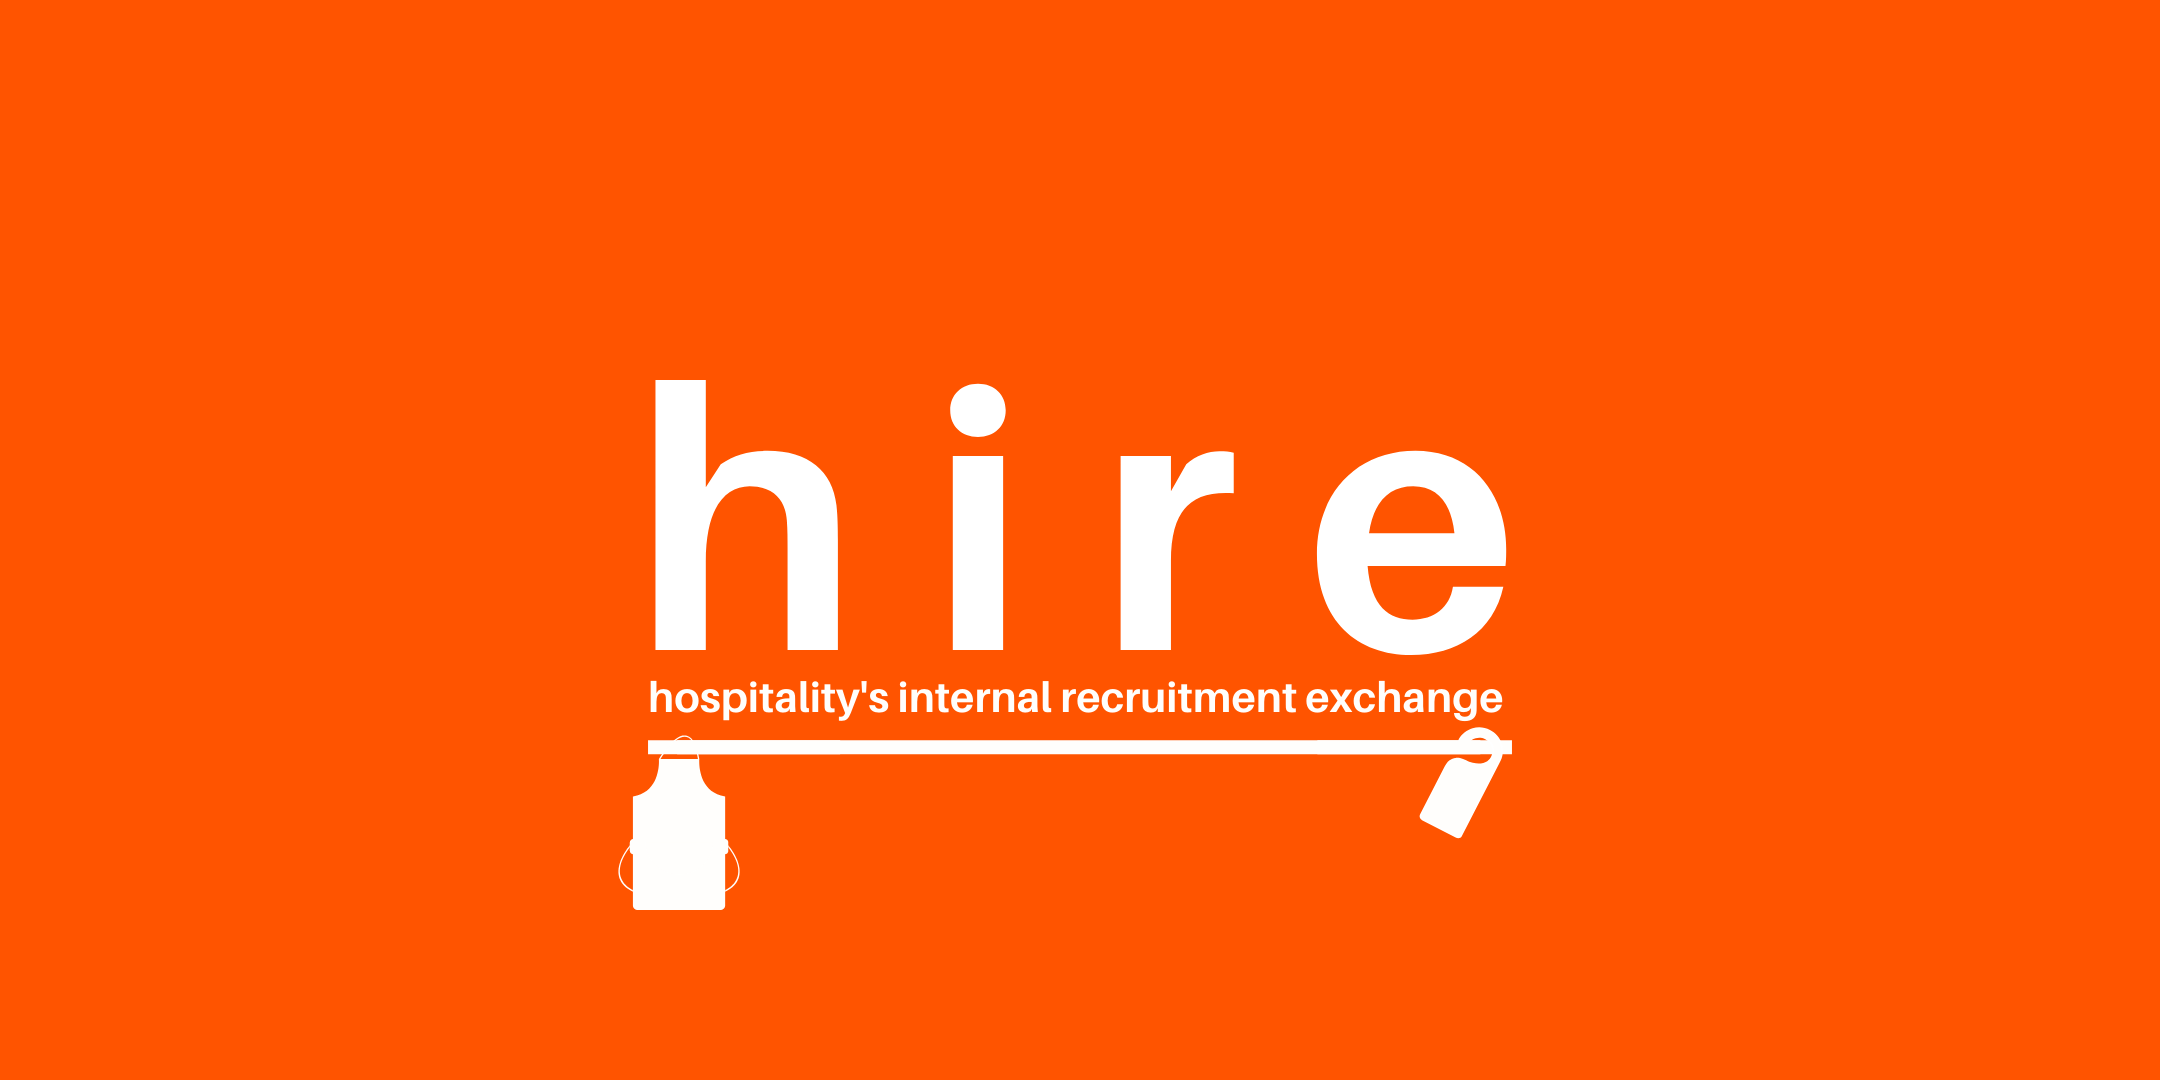 HIRE - Hospitality's Internal Recruitment Exchange